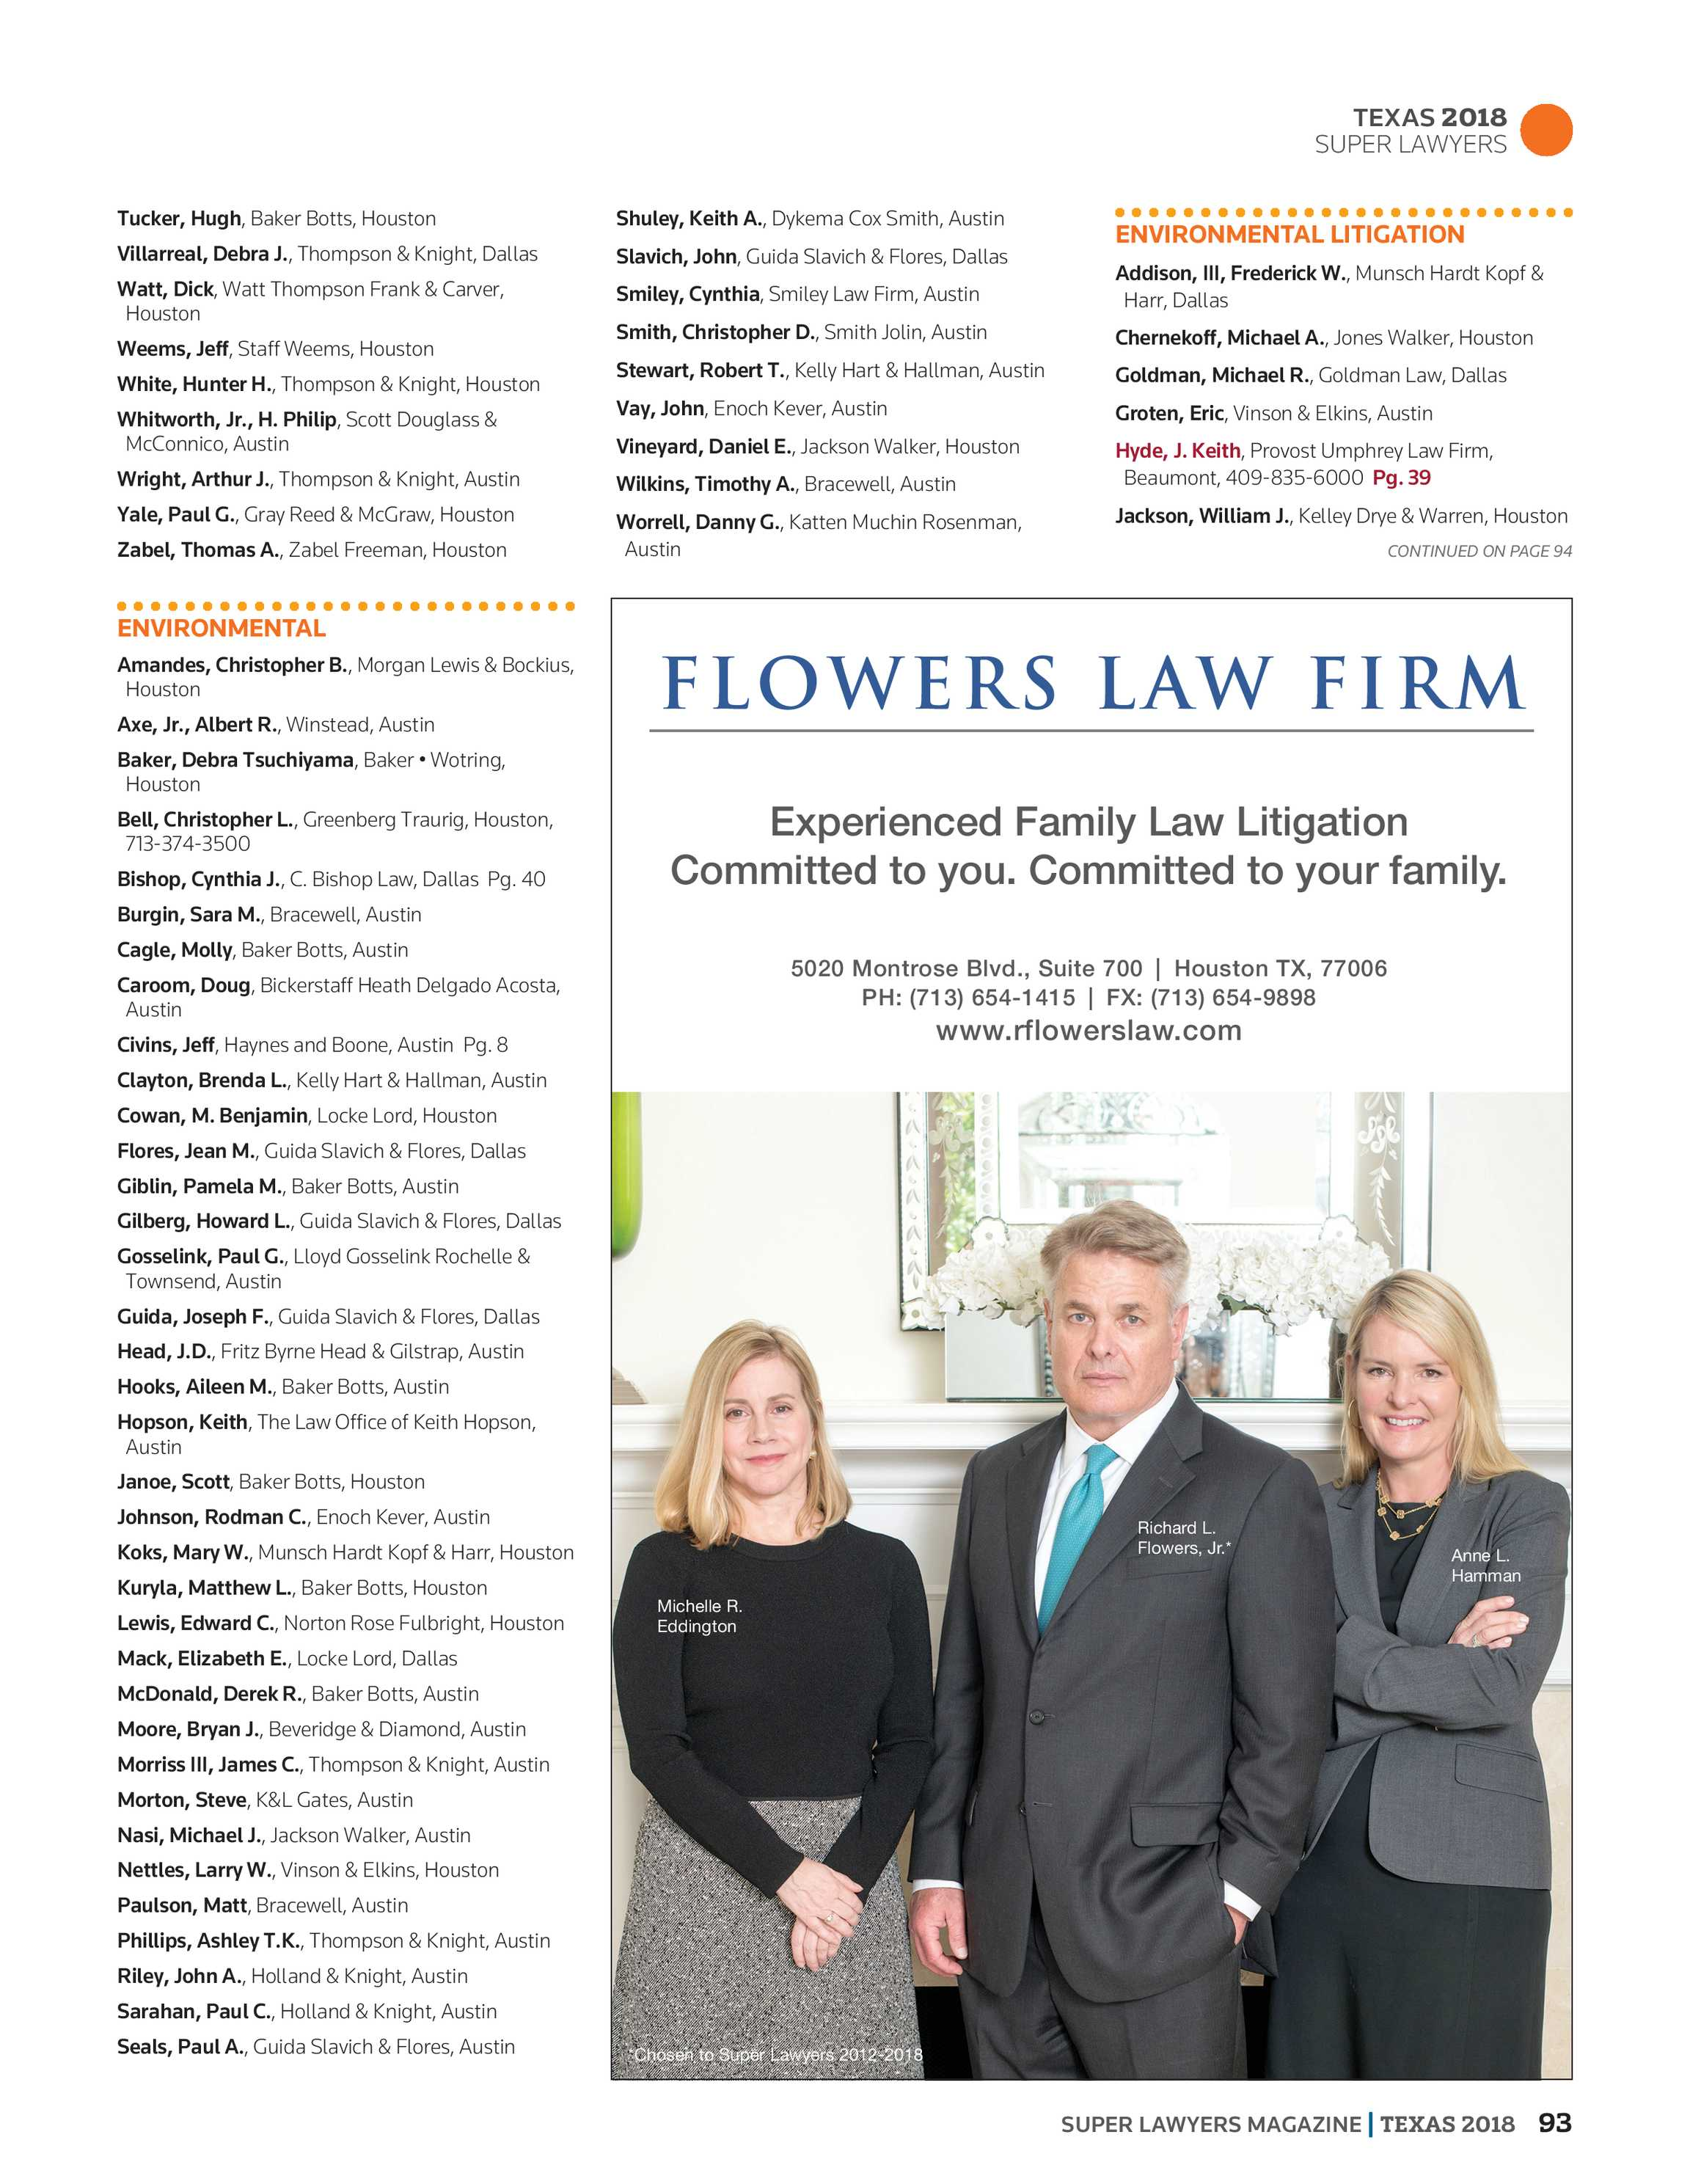 Super Lawyers - Texas 2018 - page 94